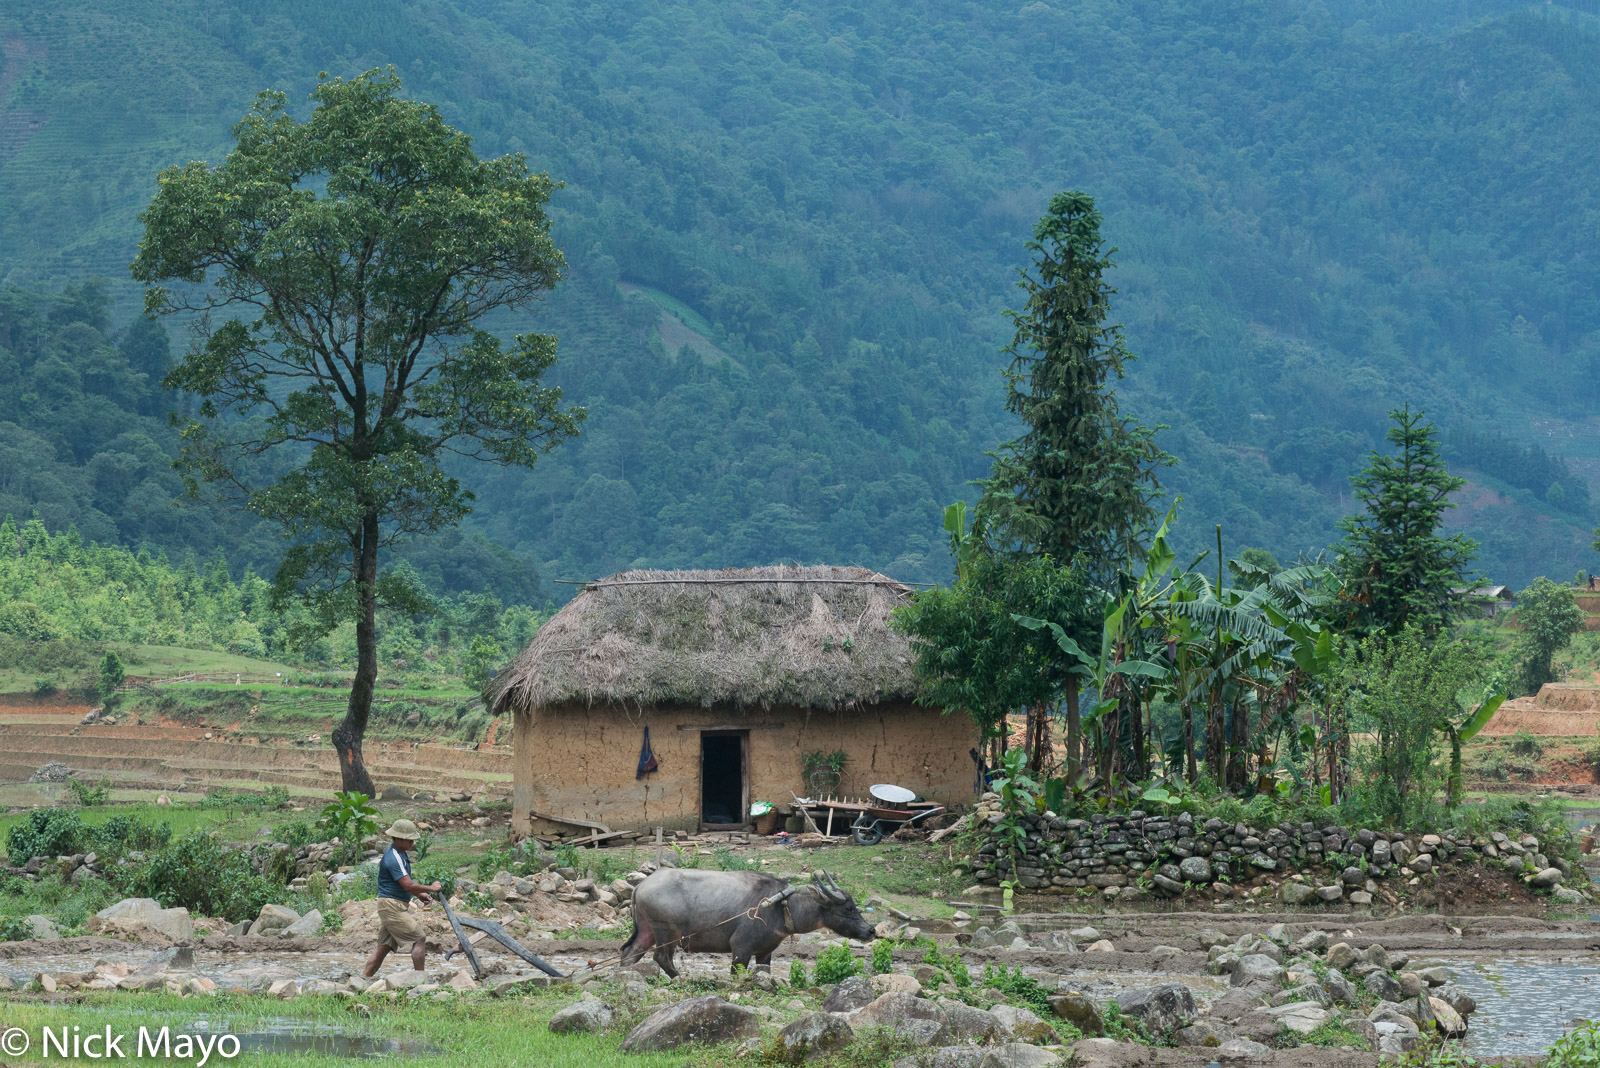 A Hani farmer ploughing with his water buffalo in front of a mushroom house near Y Ty.